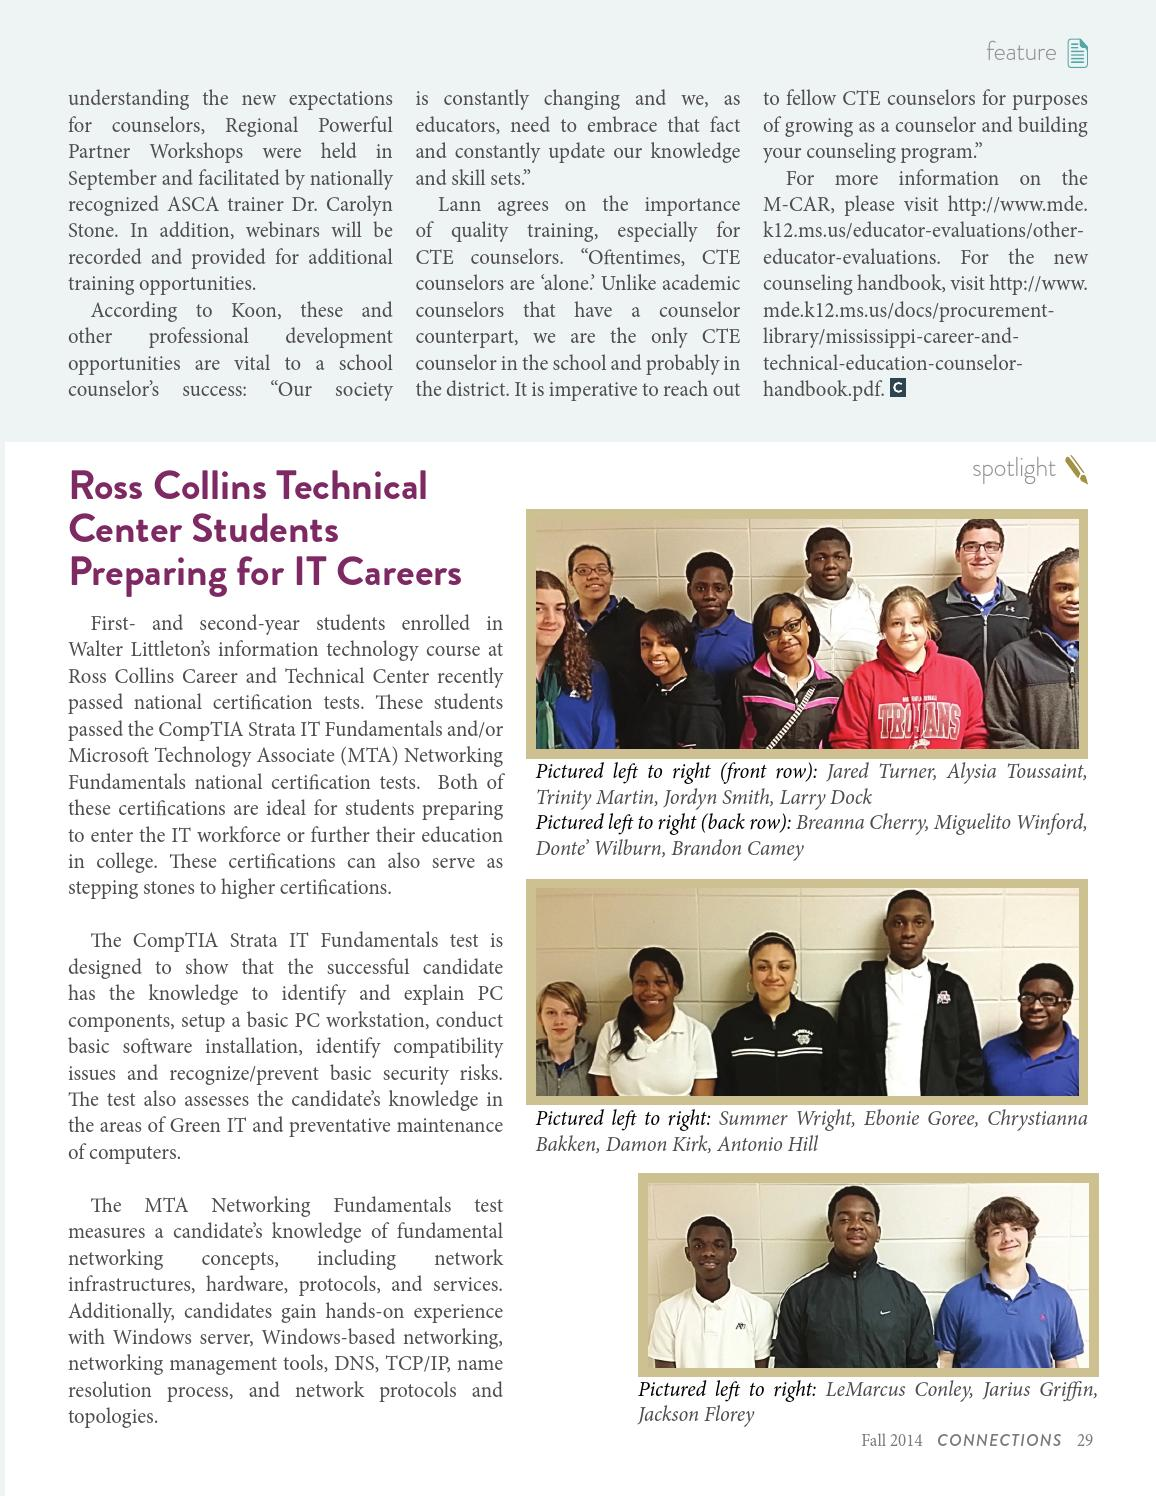 Connections Fall 2014 by Mississippi State University